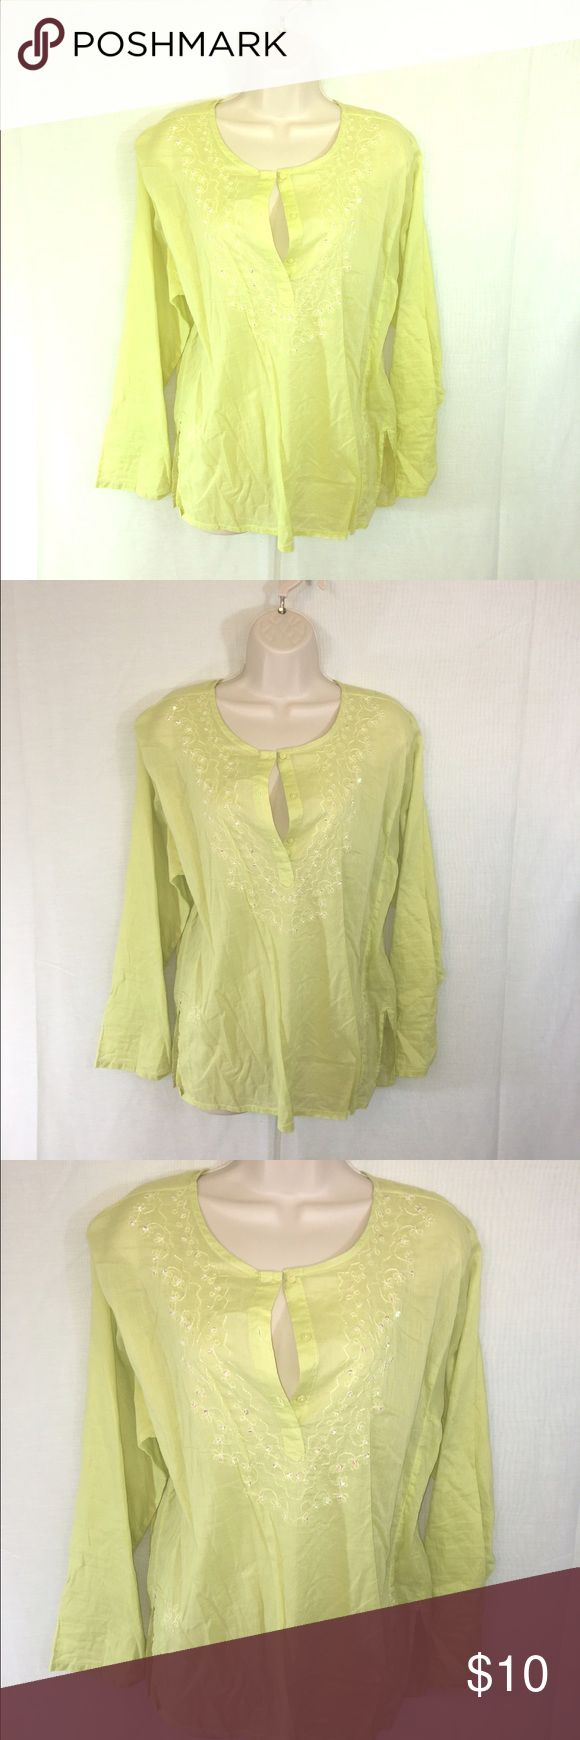 Oversized Green Shirt-M A pretty and breezy green top in a fun color and pattern. Can be paired with anything for a go to casual summer look! Perfect for throwing over a Swimsuit to the beach to protect a summer glow! Route 66 Tops Blouses